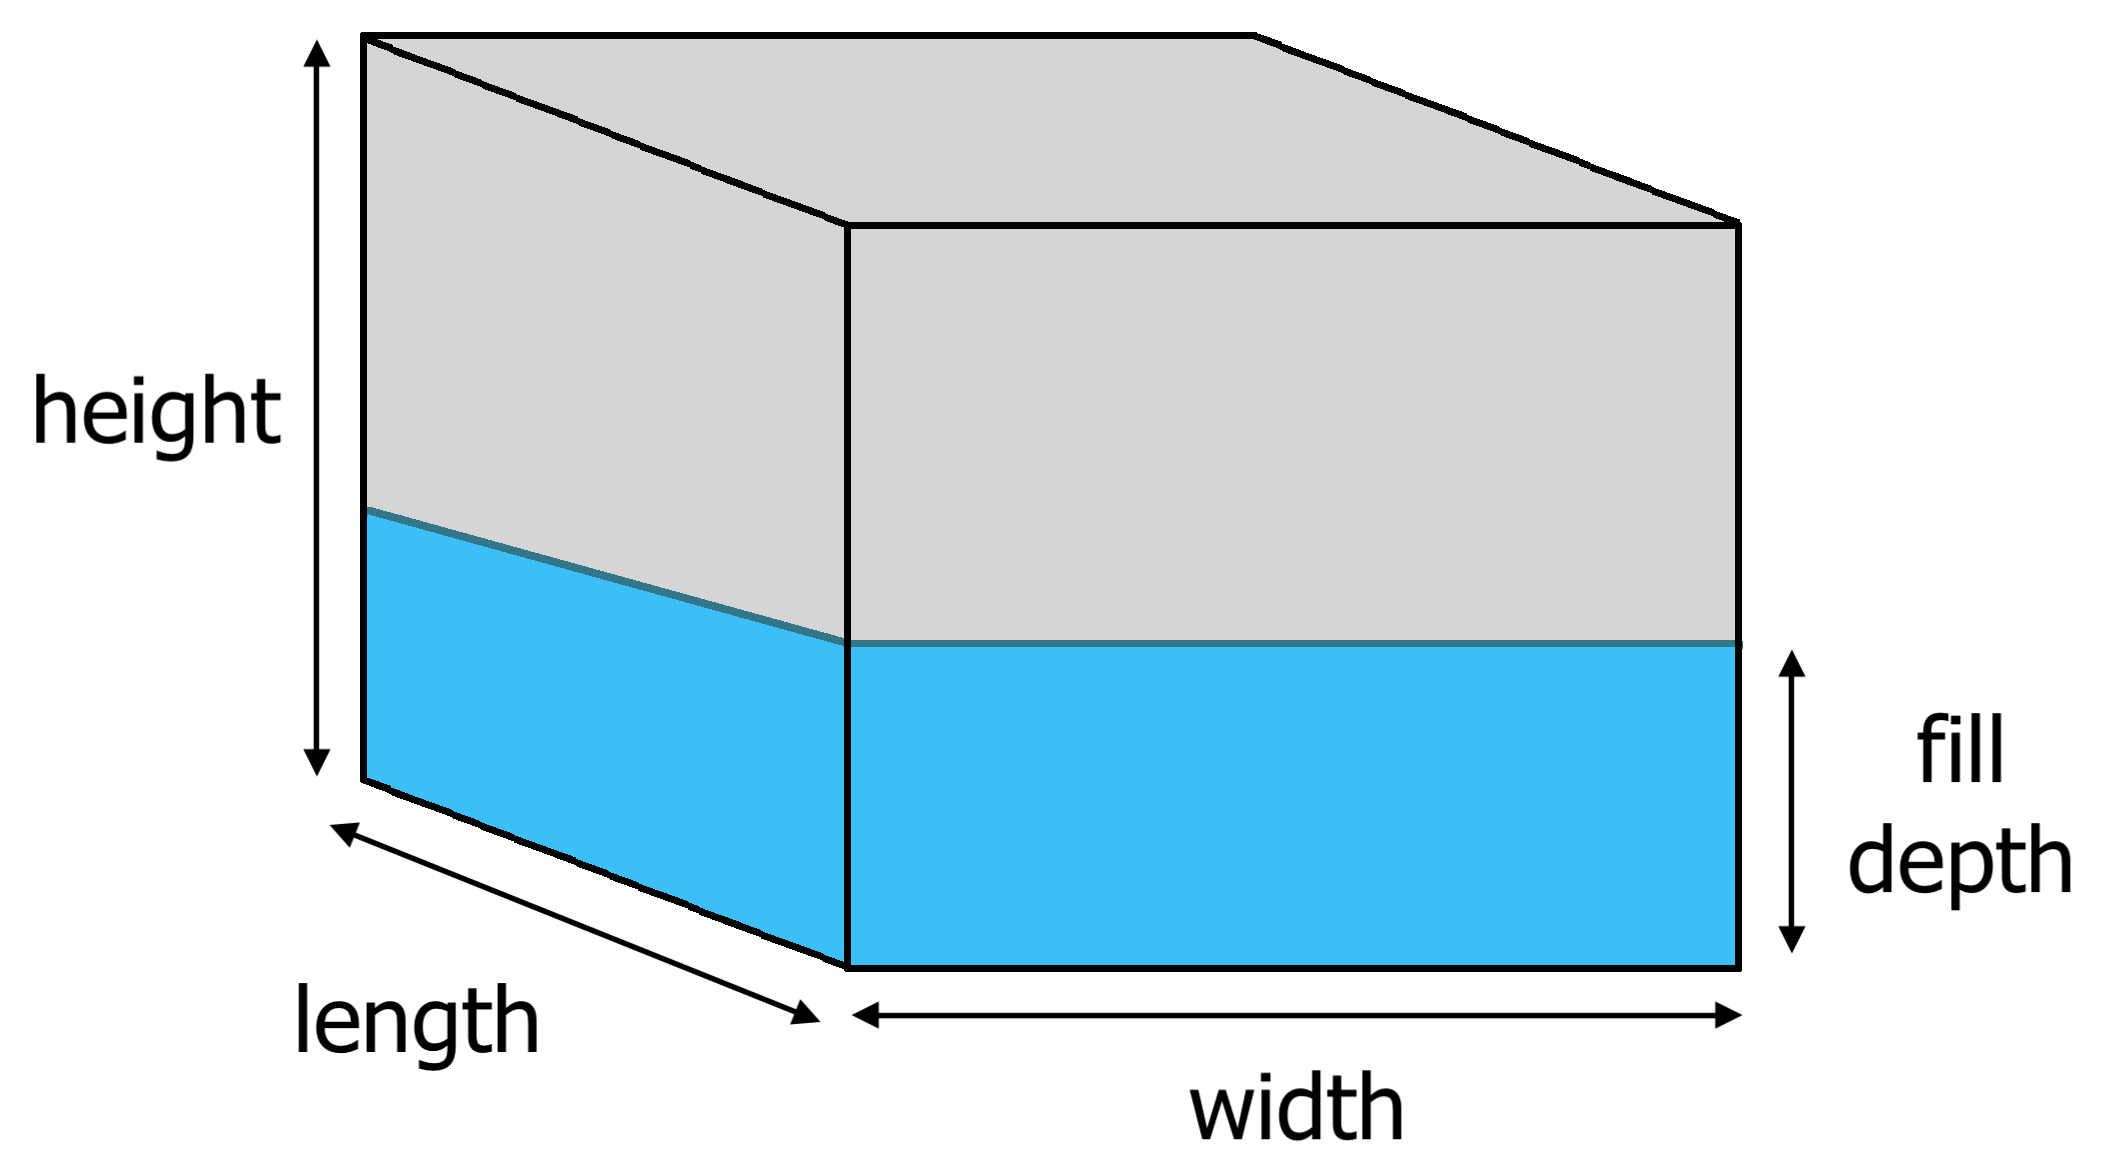 rectangular tank diagram showing length, width, height, and fill depth dimensions